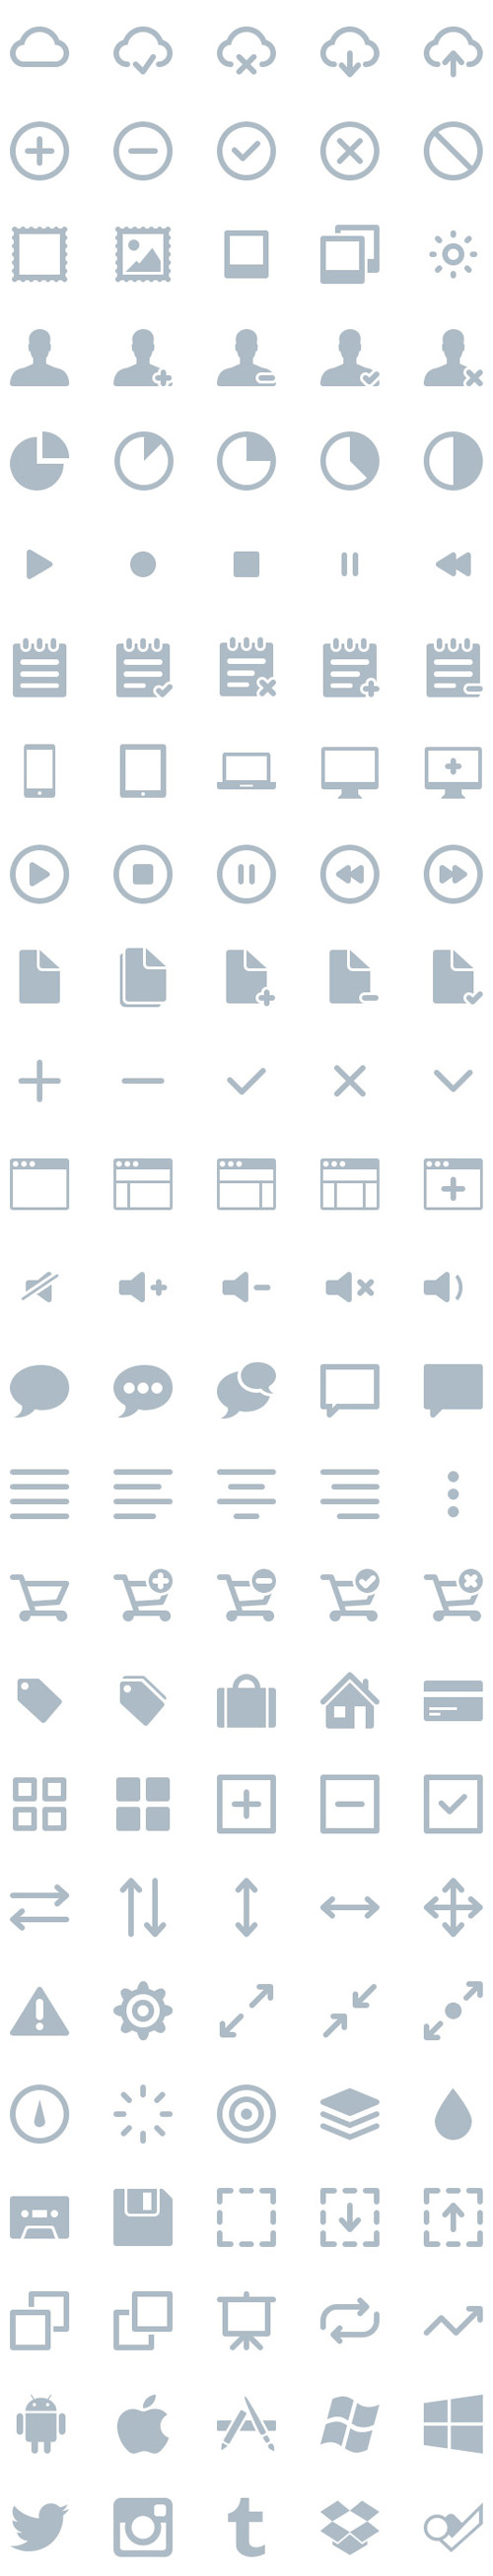 300 Vector Icons